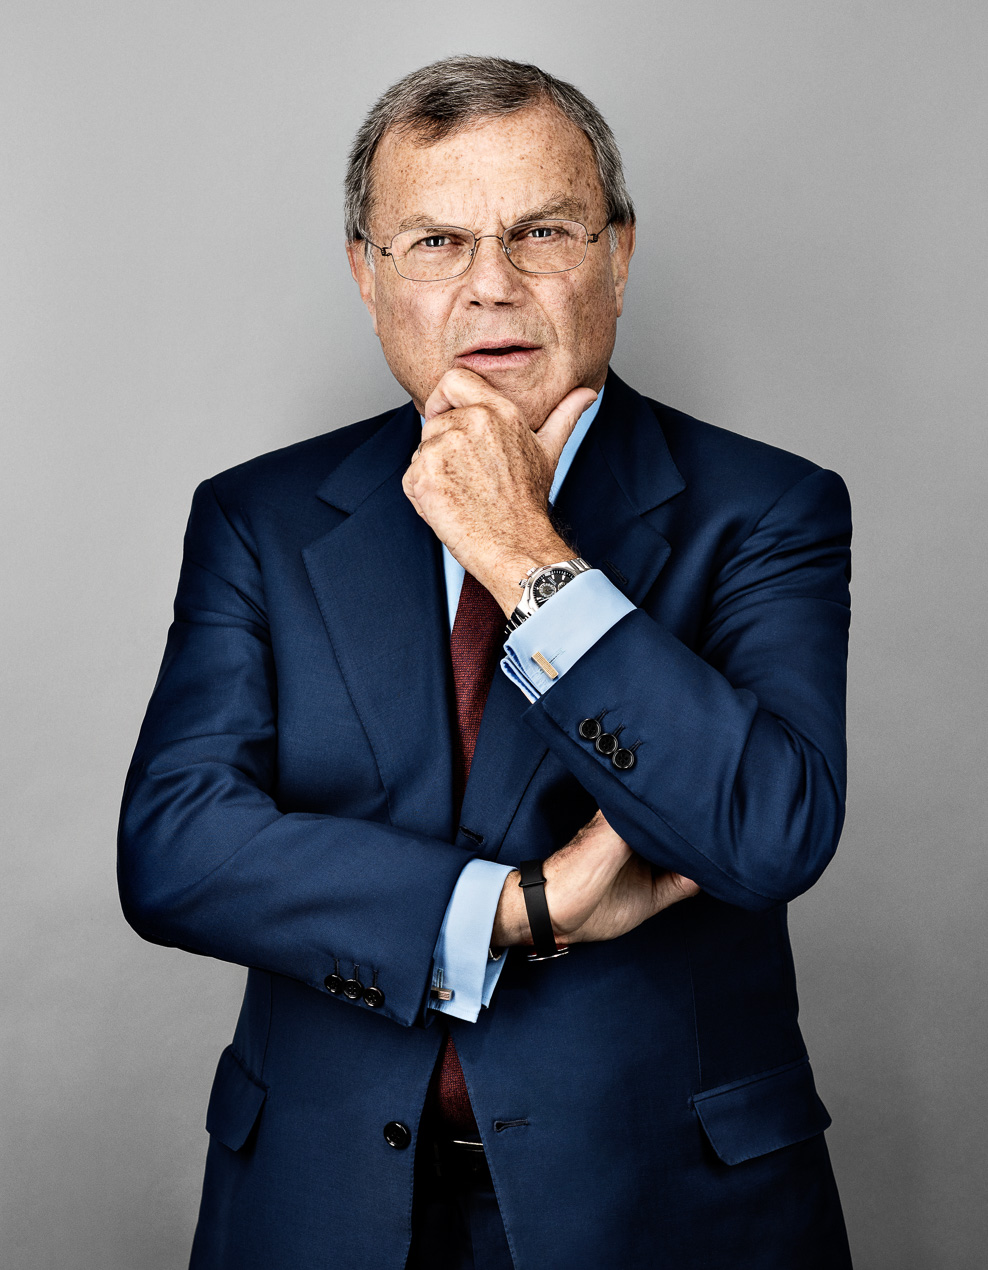 Sir Martin Sorrell, Founder and CEO - WPP